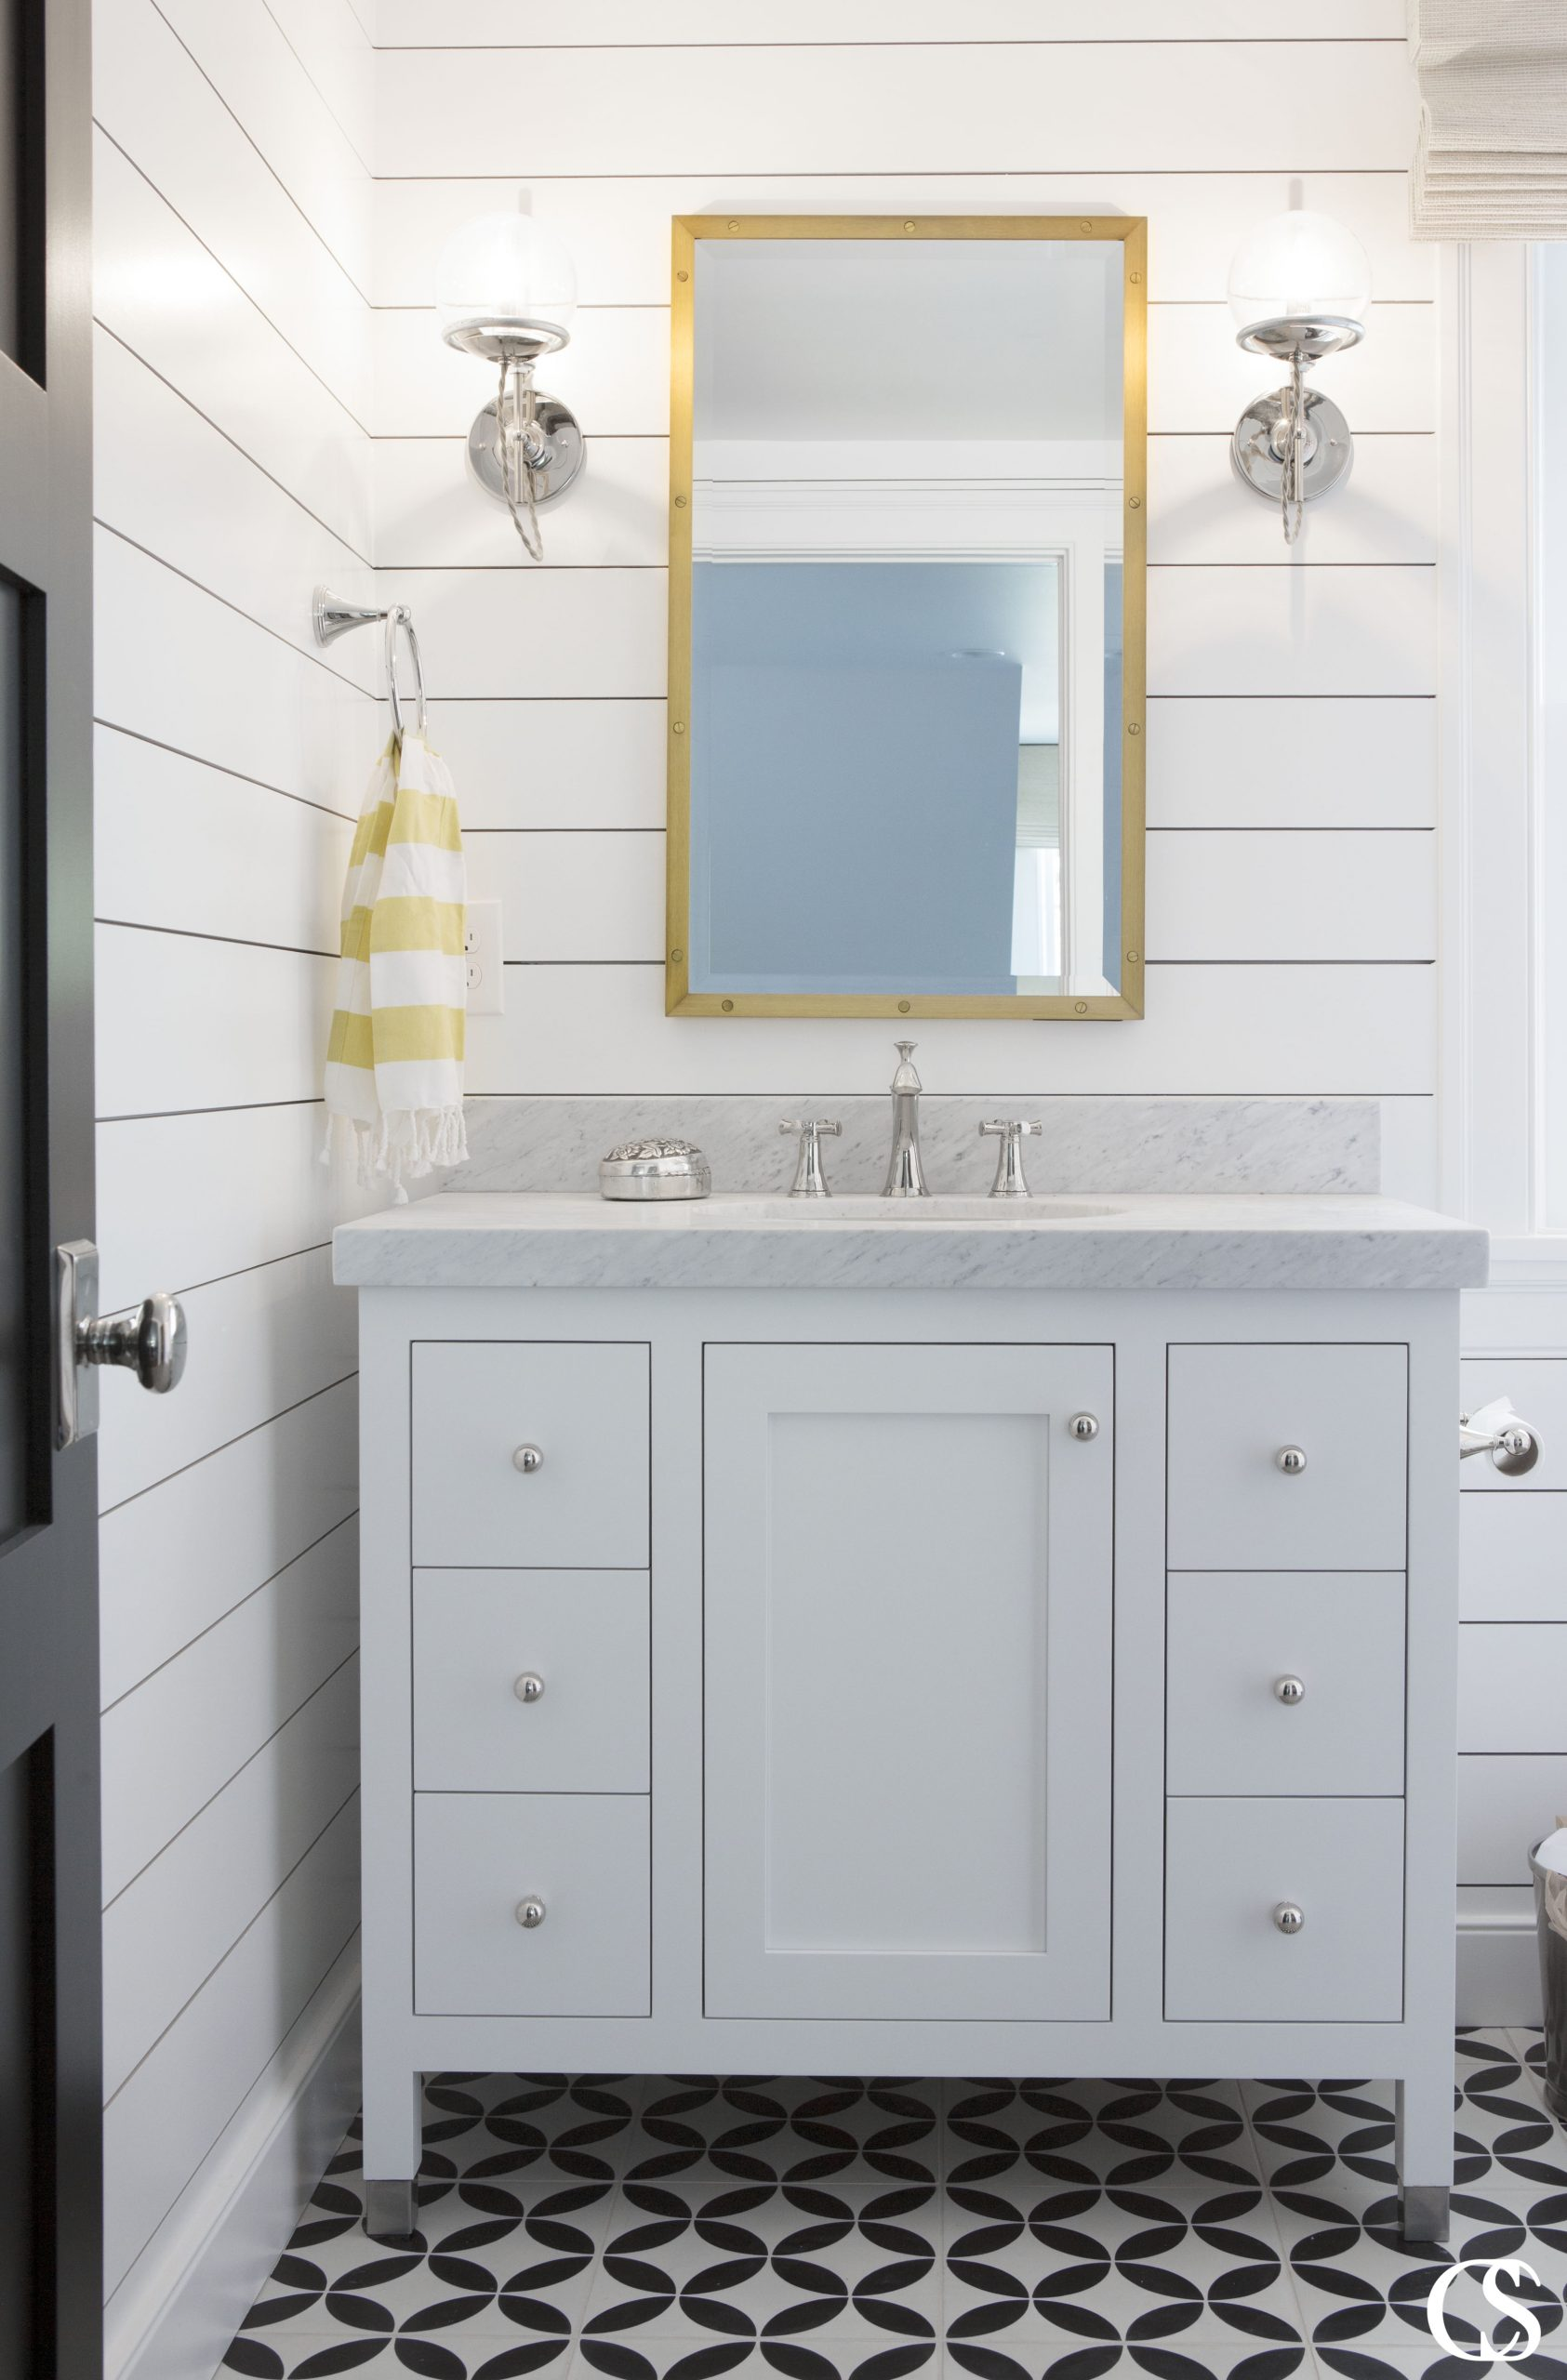 Hello versatility! The clean and simple look of this soft blue cabinet for the bathroom somehow draws the eye and also plays the part of solid foundation for other design elements to build on. It also makes it easy to redesign your bathroom simply by switching out towels and other accessories.